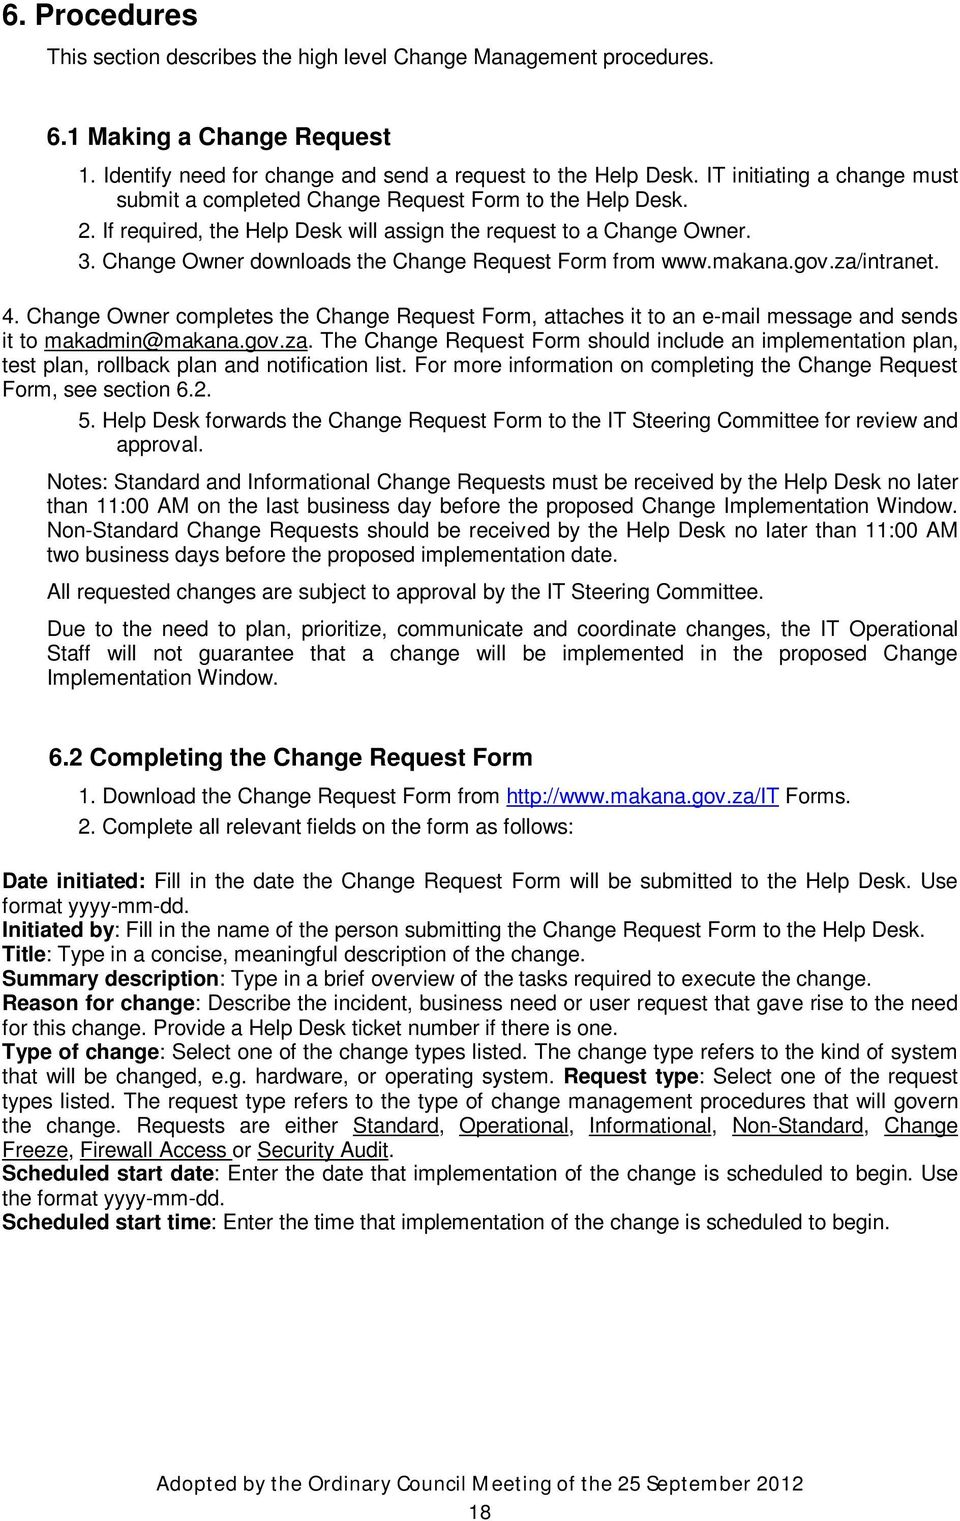 Change Owner downloads the Change Request Form from www.makana.gov.za/intranet. 4. Change Owner completes the Change Request Form, attaches it to an e-mail message and sends it to makadmin@makana.gov.za. The Change Request Form should include an implementation plan, test plan, rollback plan and notification list.